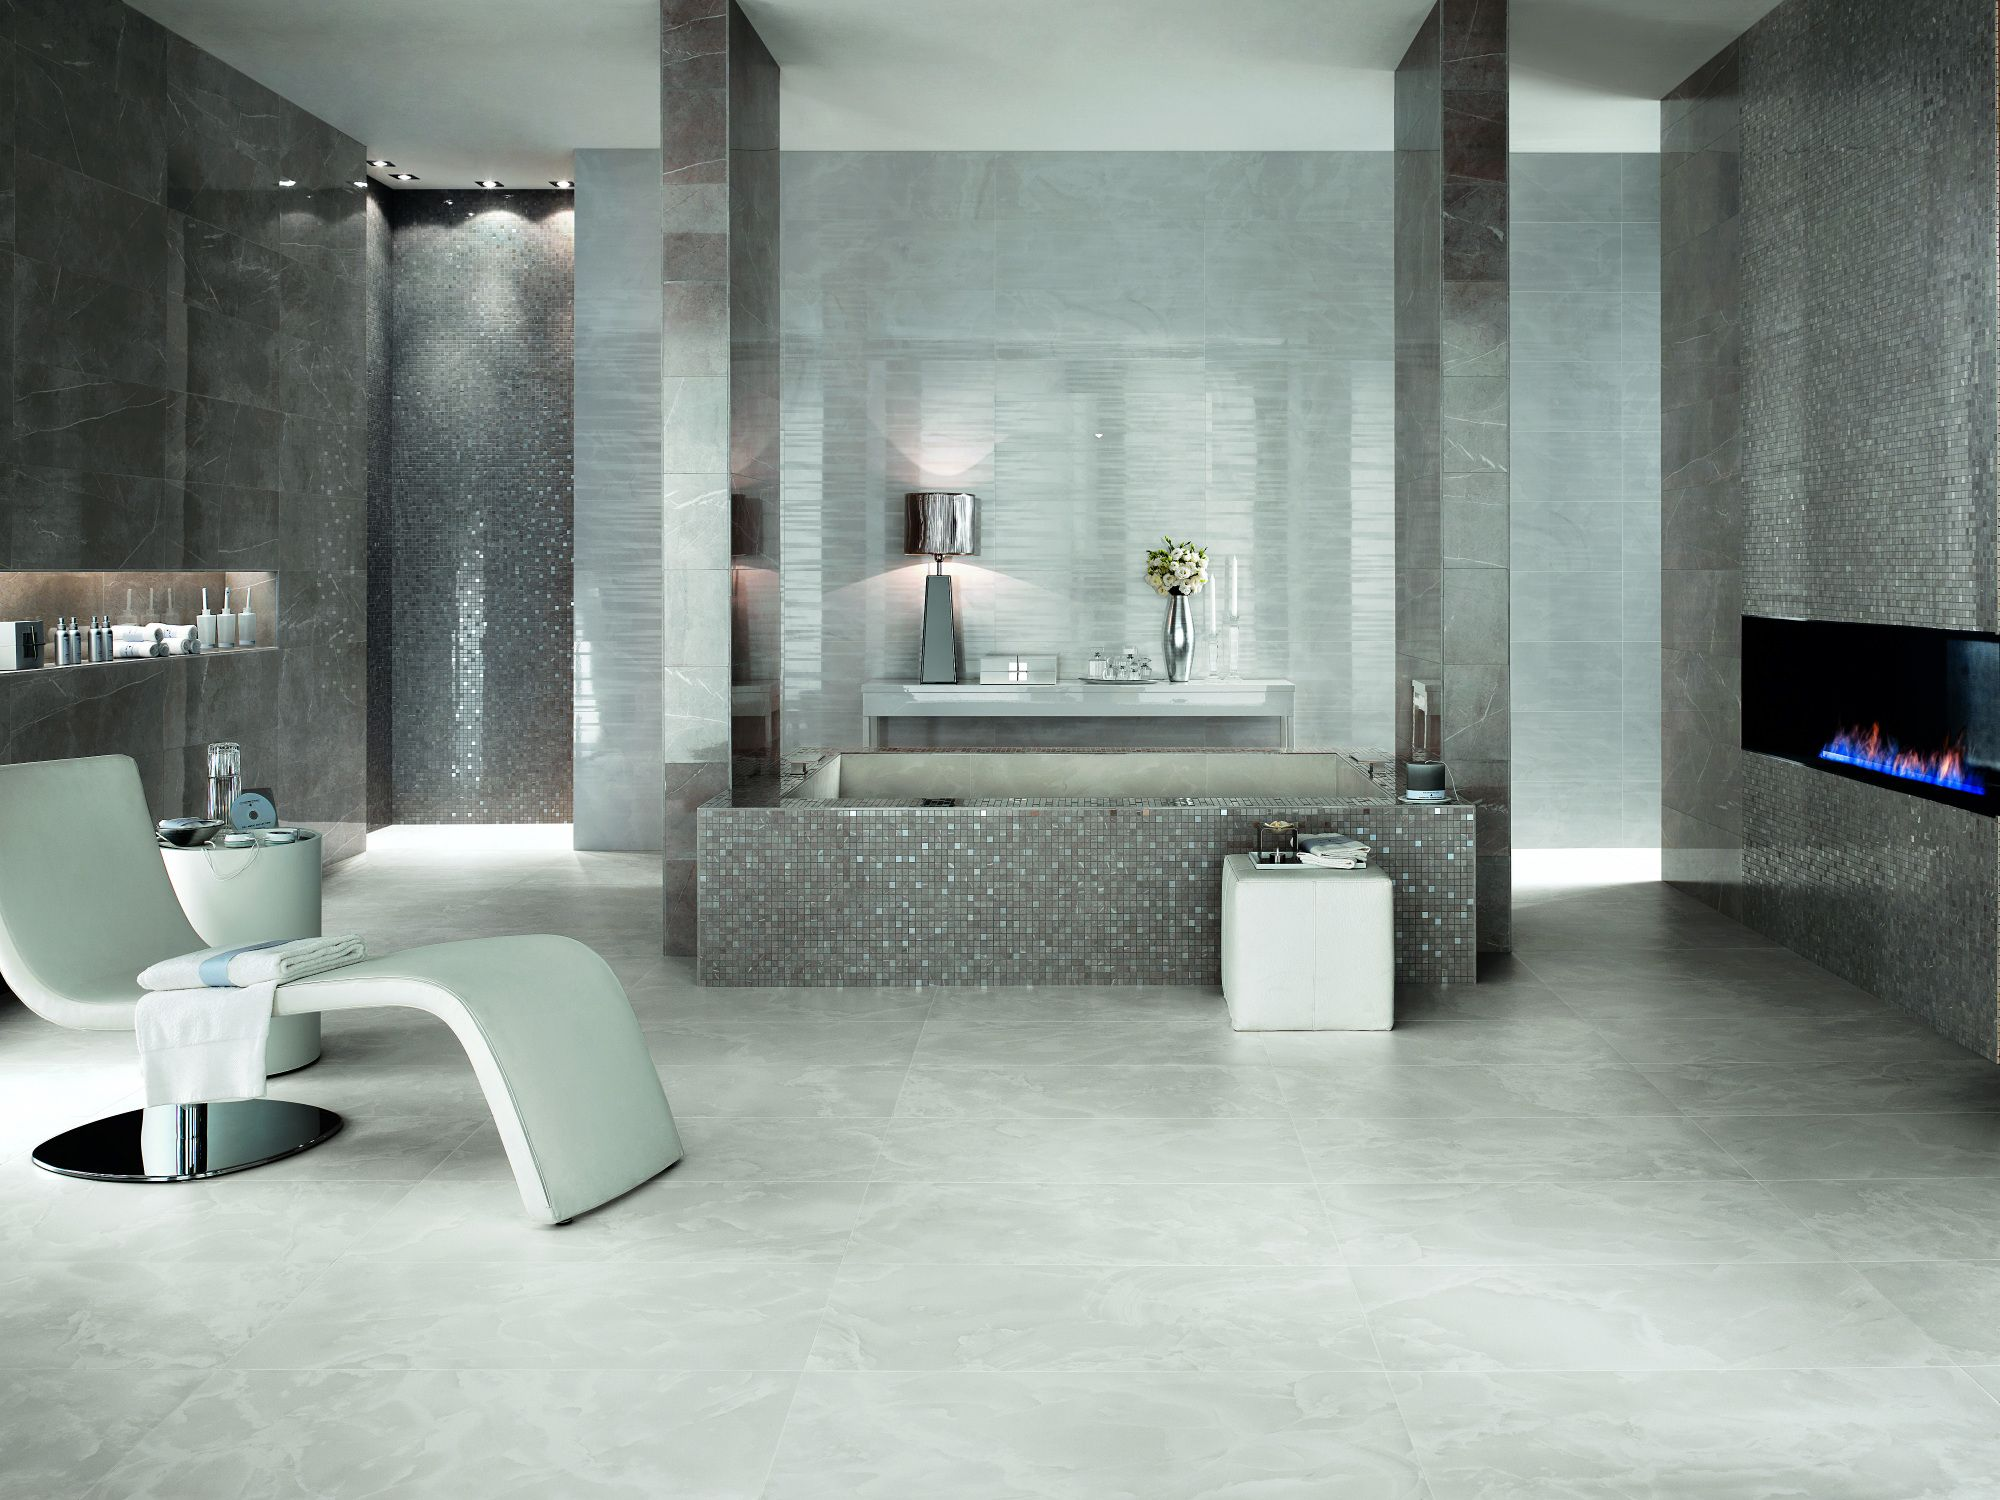 Design Evo Tiles Minoli Evolution Marvel Floor Tiles Marvel Moon Onyx